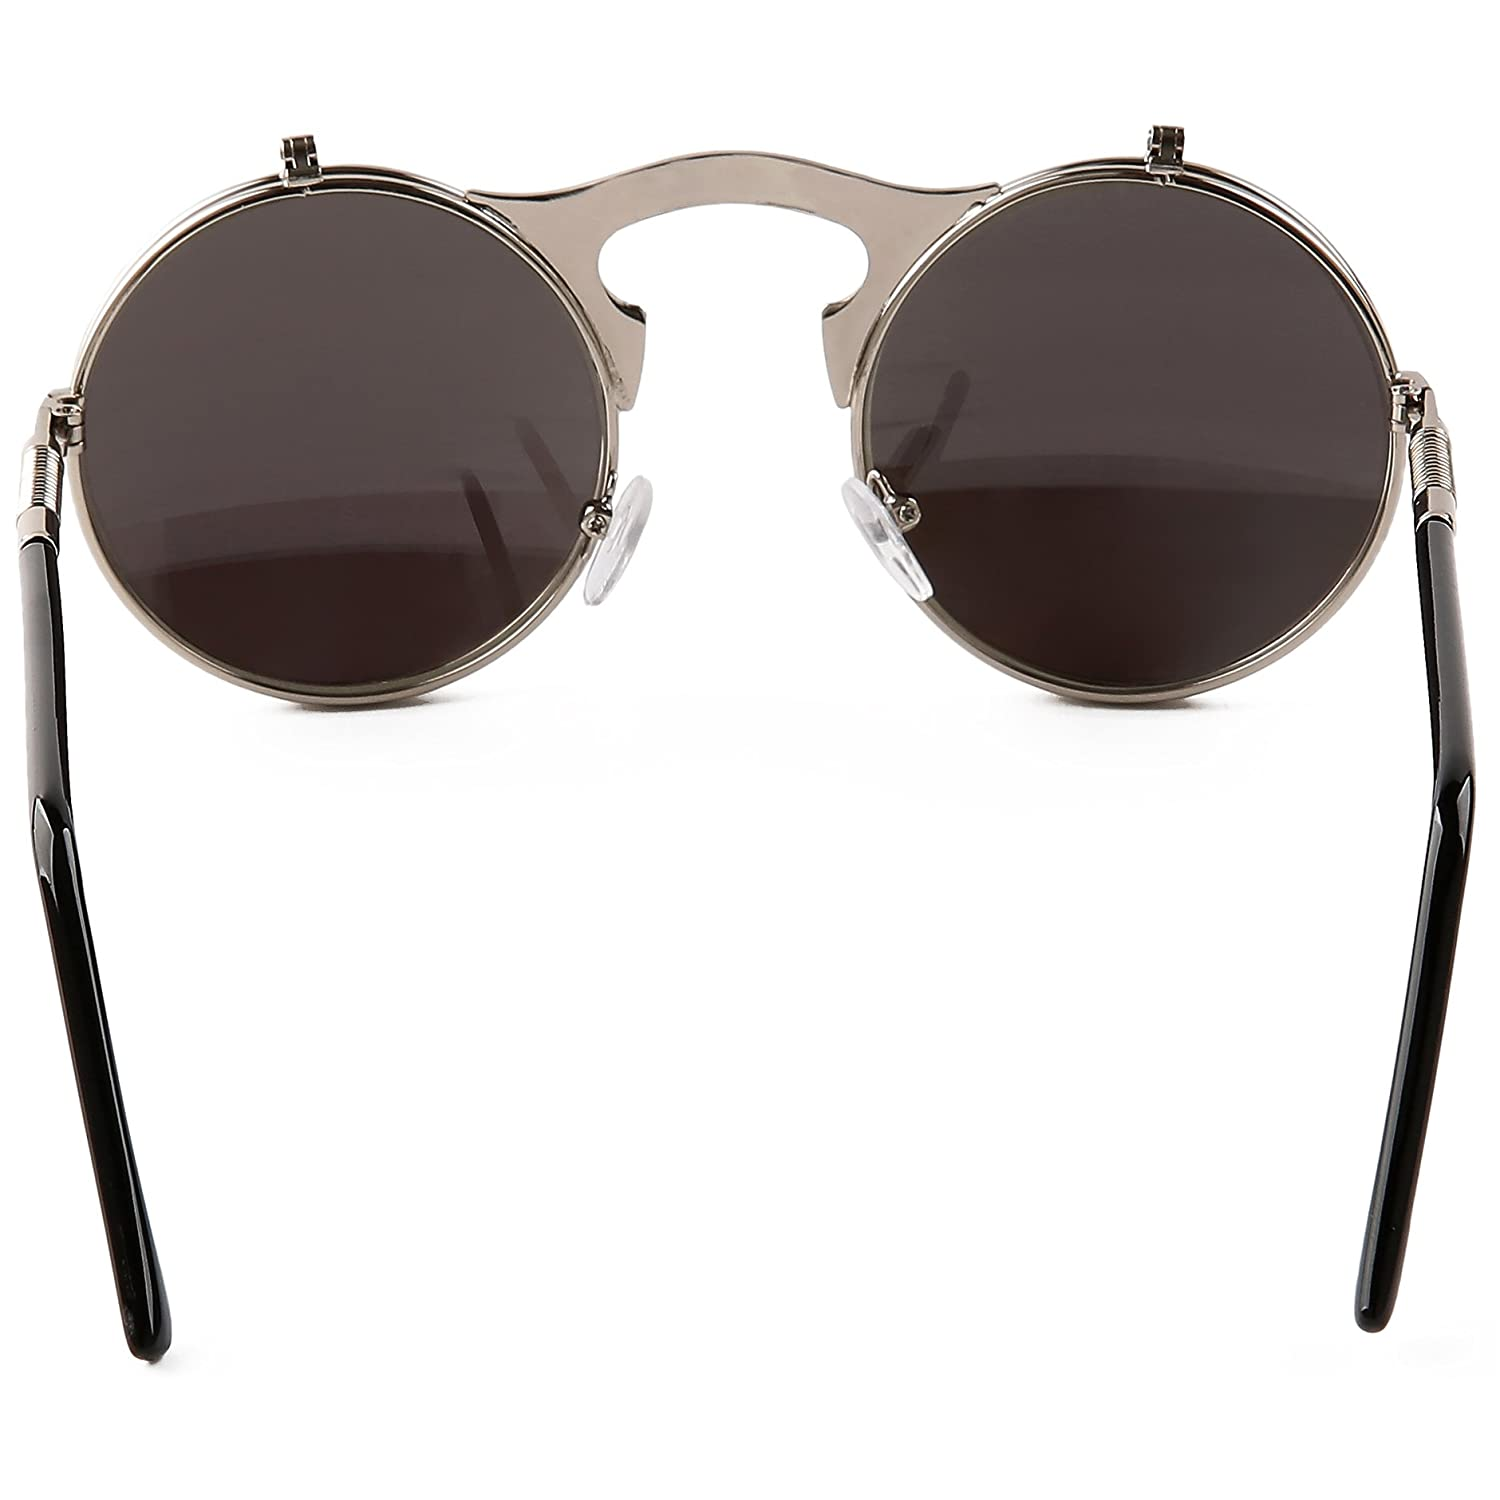 fe752c666e Amazon.com  Pession Small Retro Steampunk Circle Flip Up Glasses    Sunglasses  Clothing